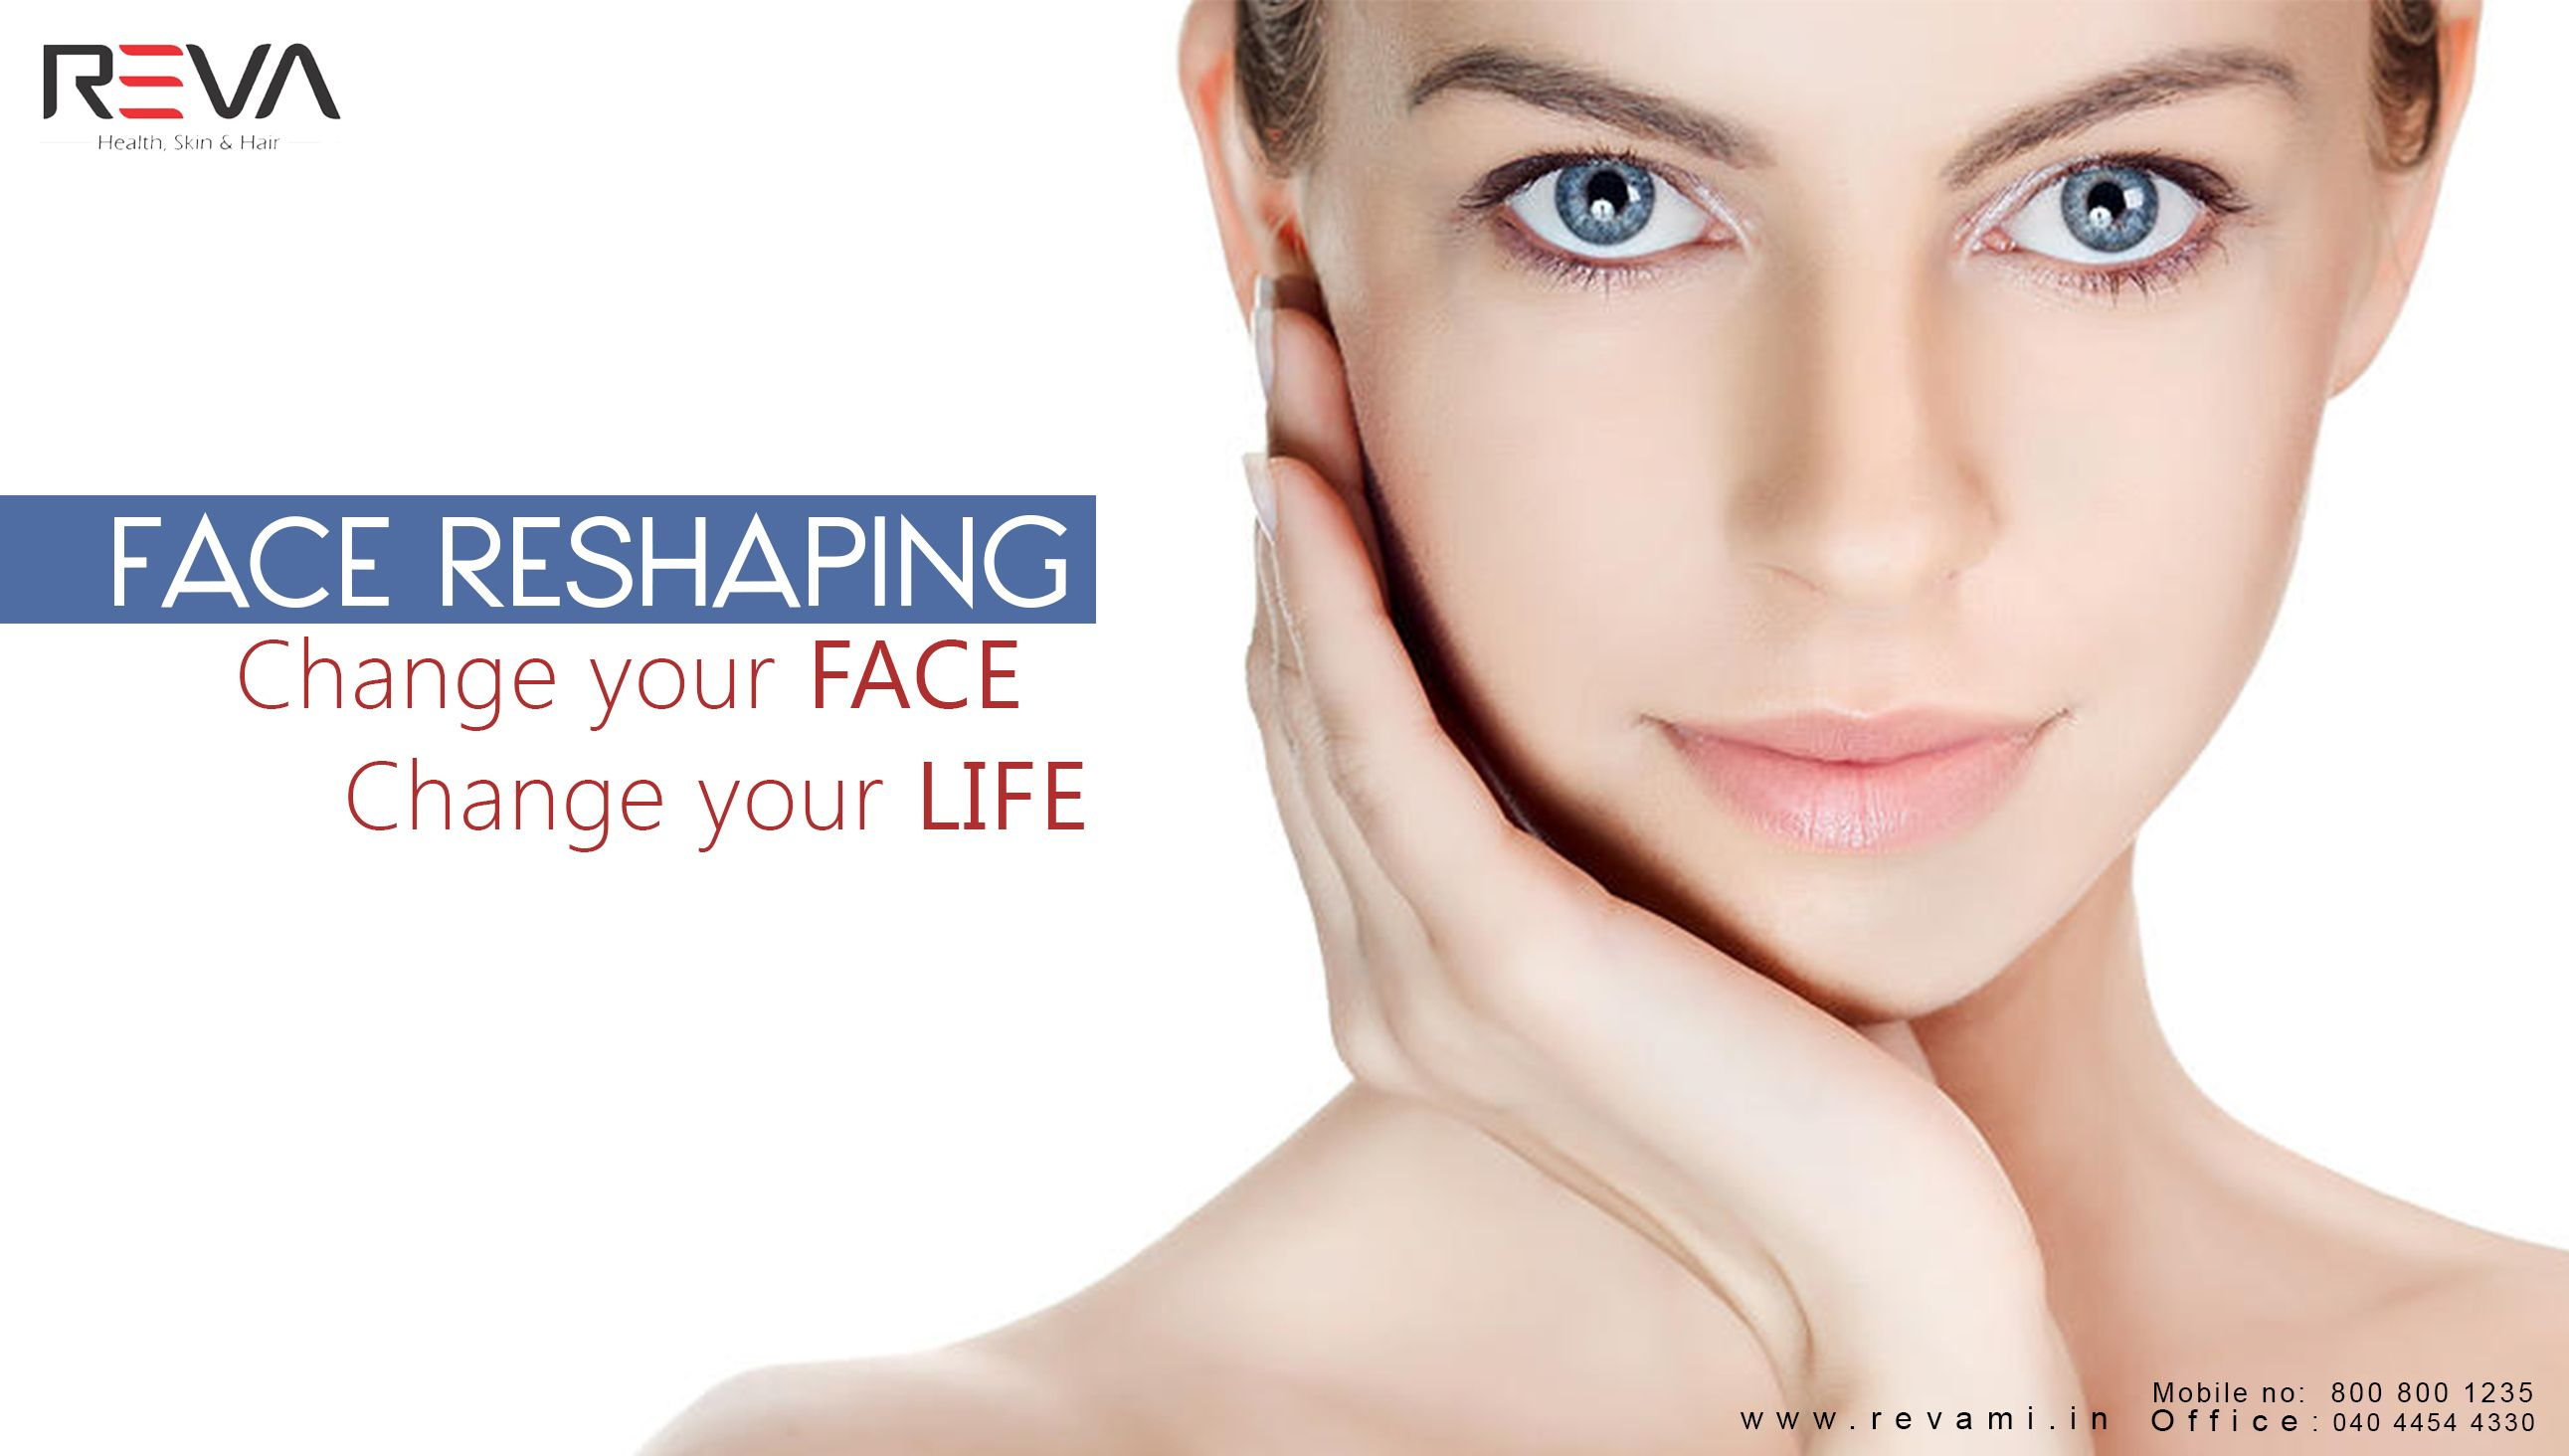 Face Reshaping Change your face Change your life more